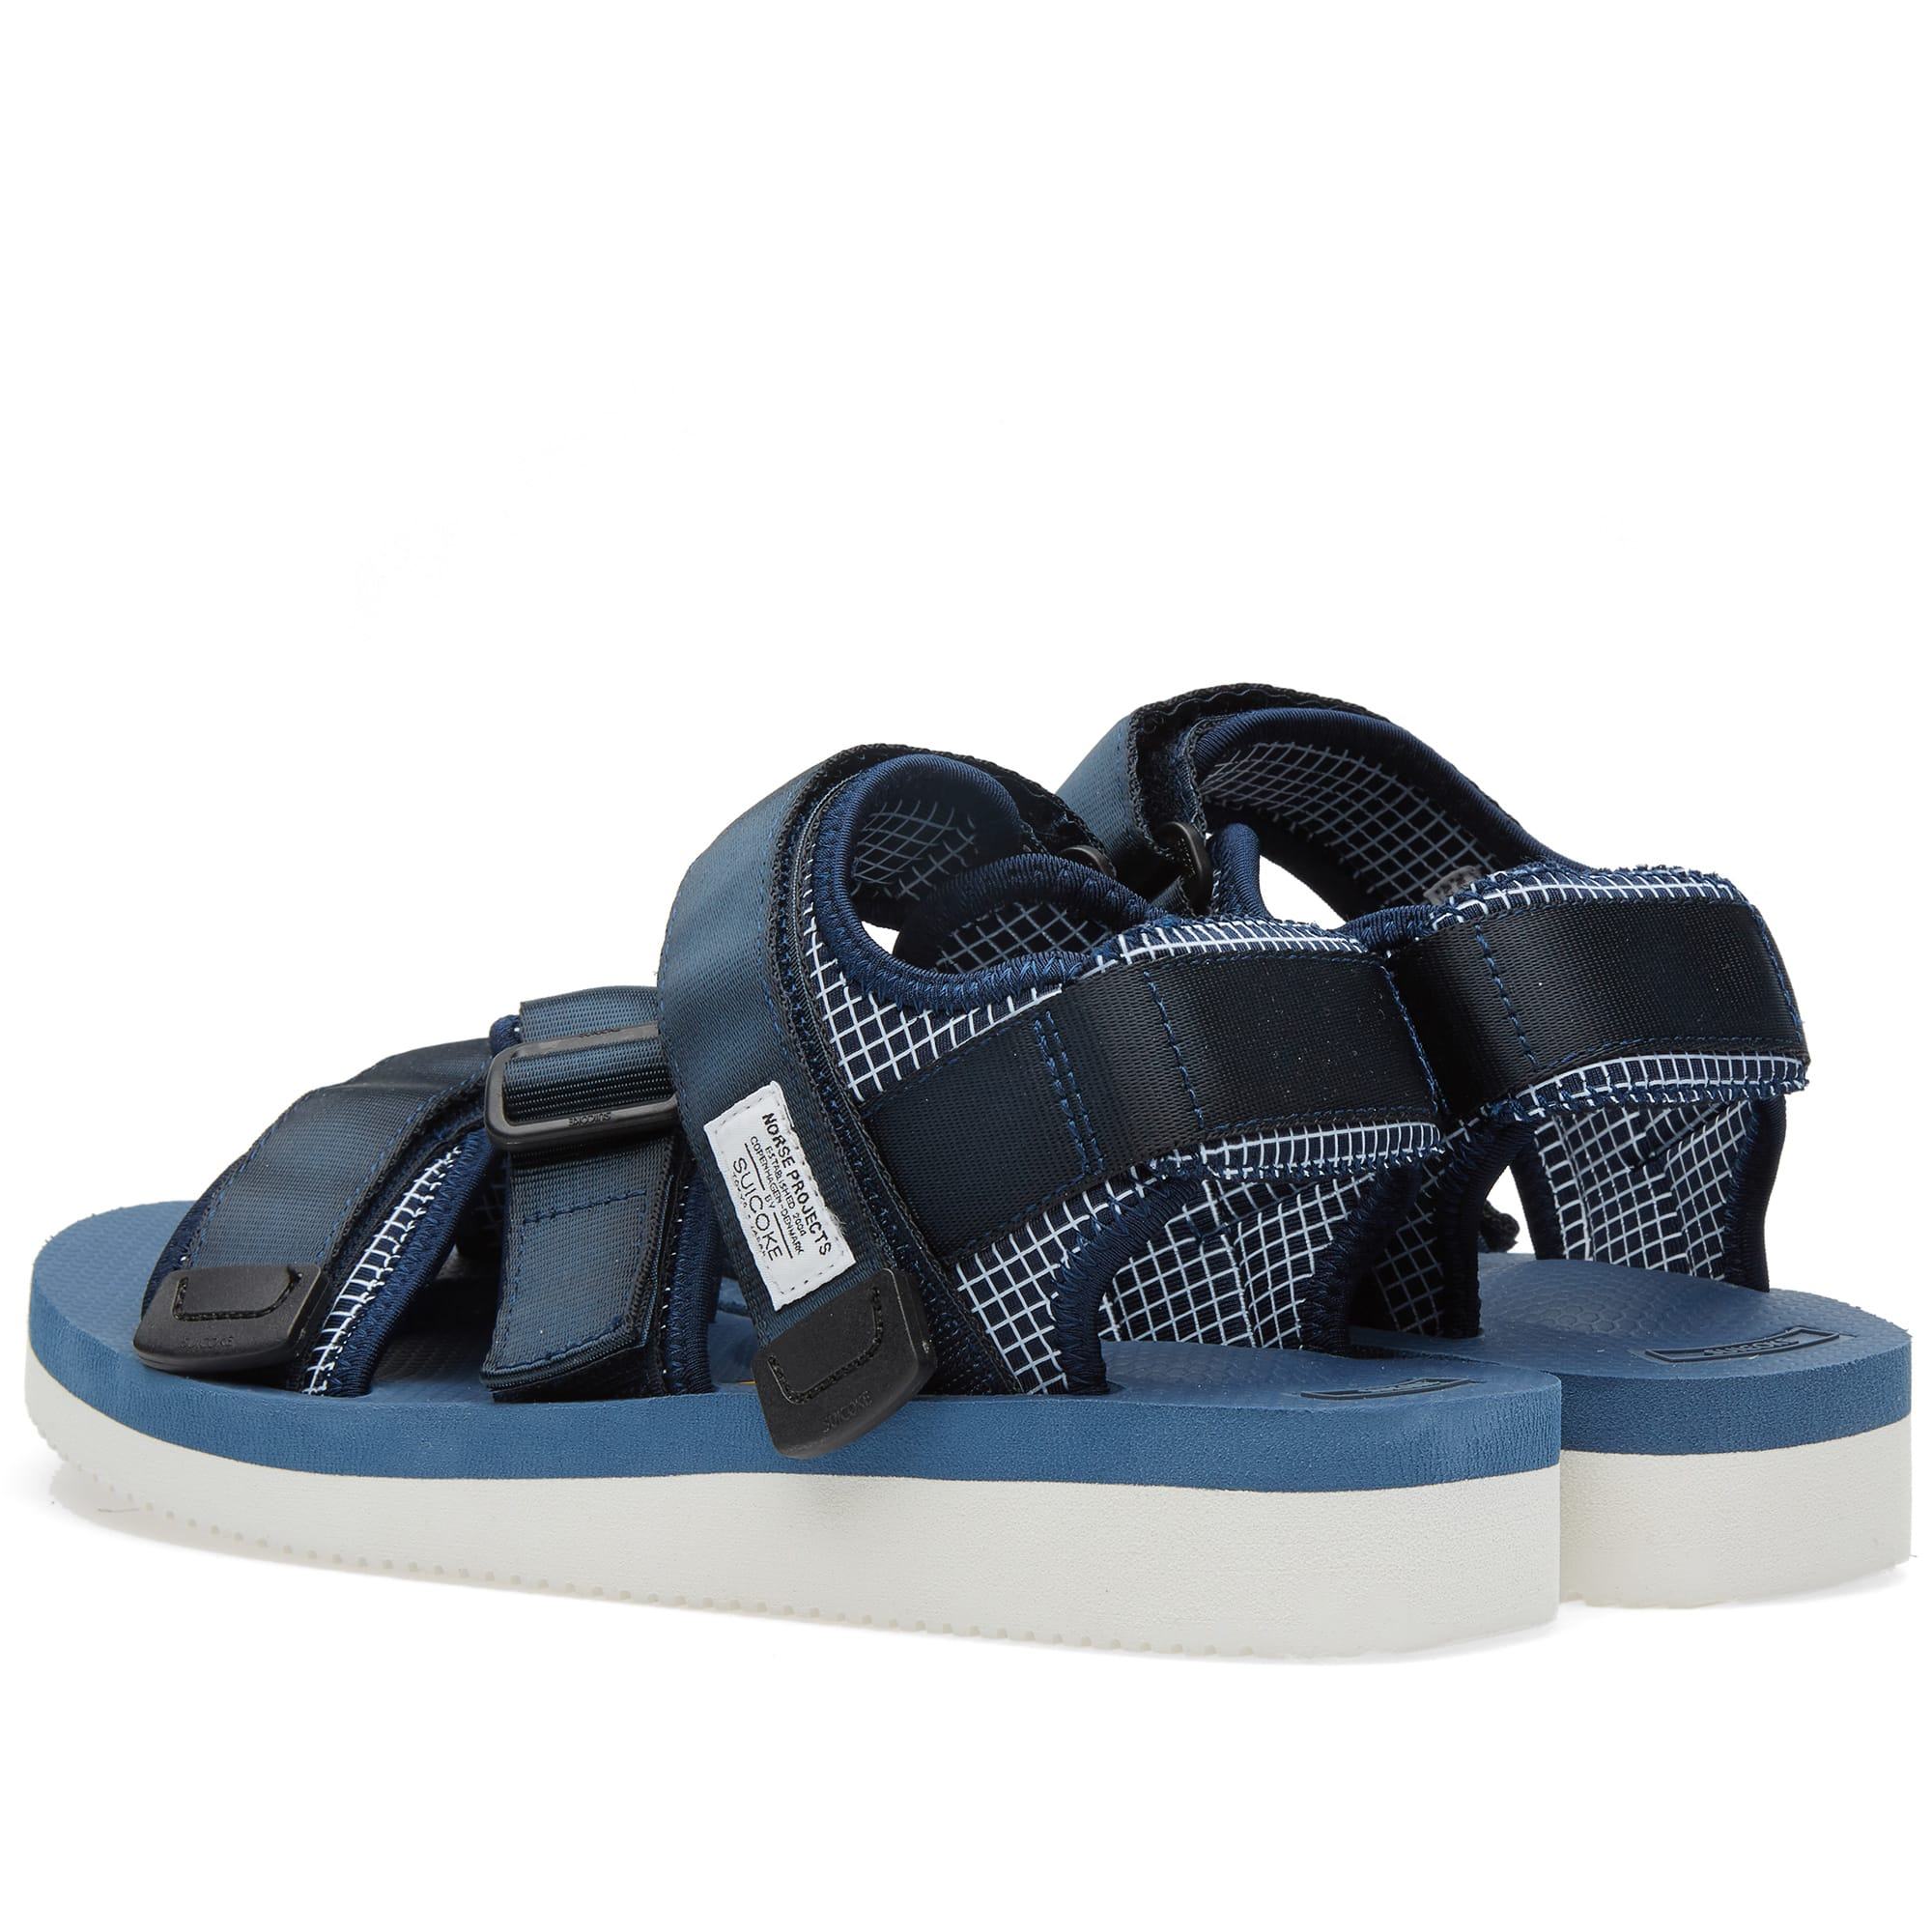 ca673276829 Norse Projects x Suicoke Sandals Dark Navy | END.